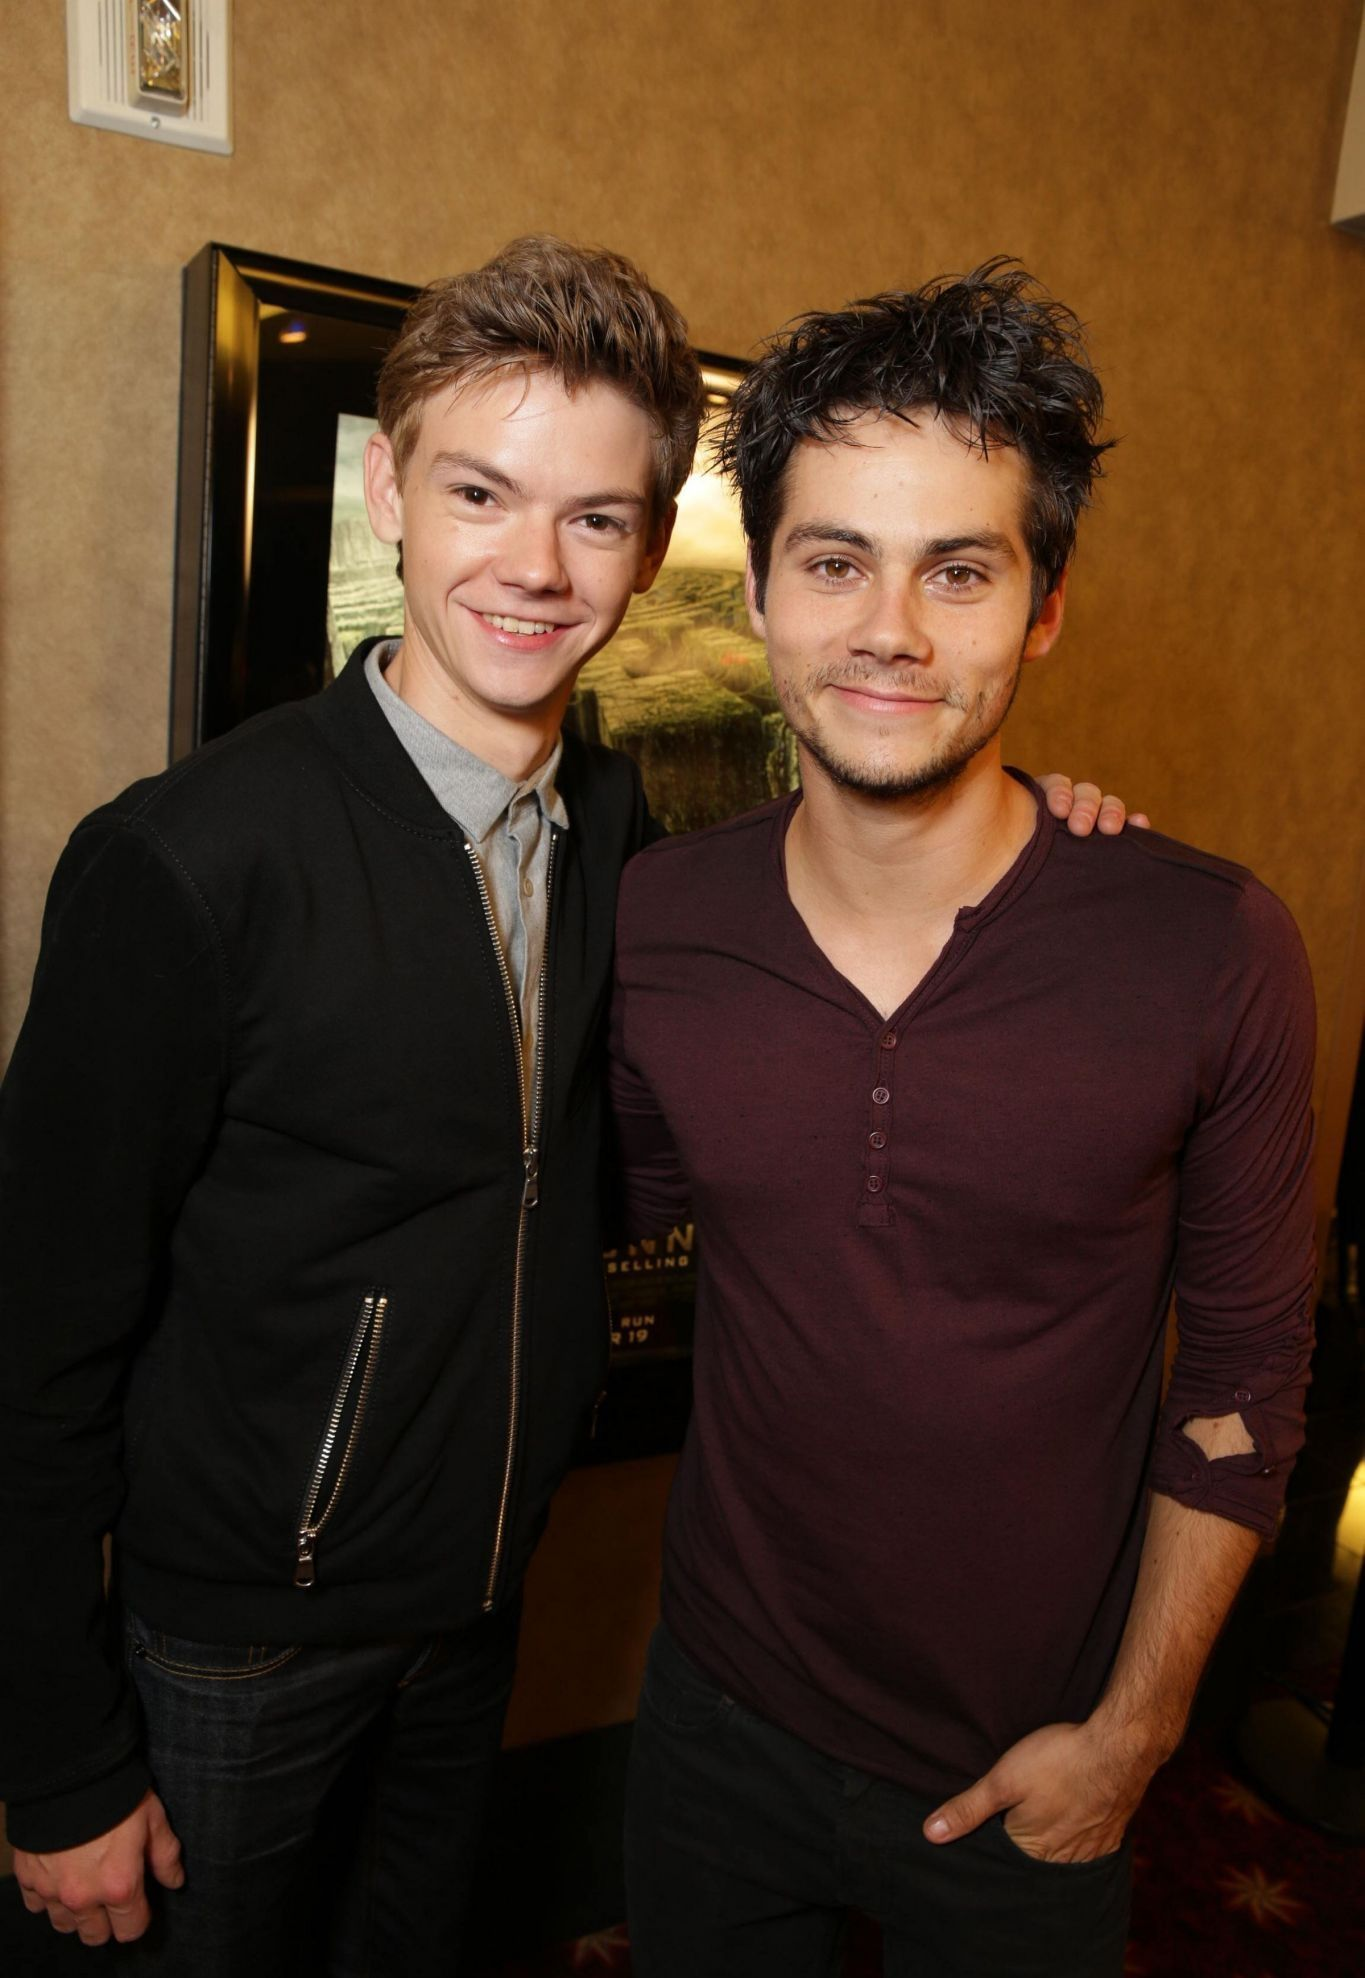 Thomas-Brodie Sangster and Dylan O'Brien at the Twentieth Century Fox Fan Screening of The Maze Runner in 2014.